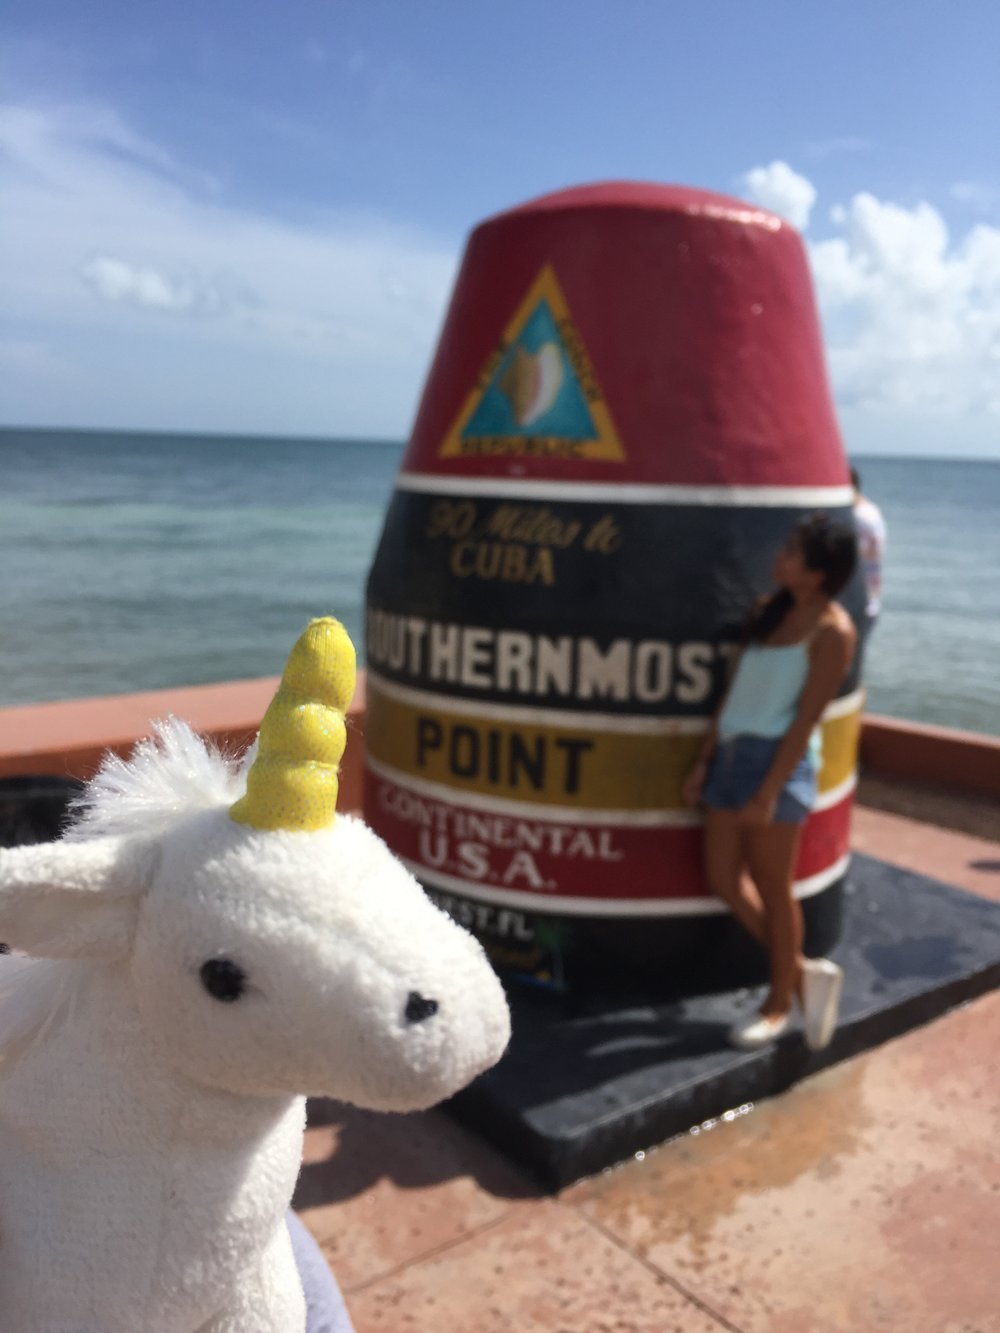 Opal the Unicorn visits the Southernmost point of the United States, where the line to get a solo photo was so long, she decided it was best to forego the queue all together and include a stranger in her selfie.